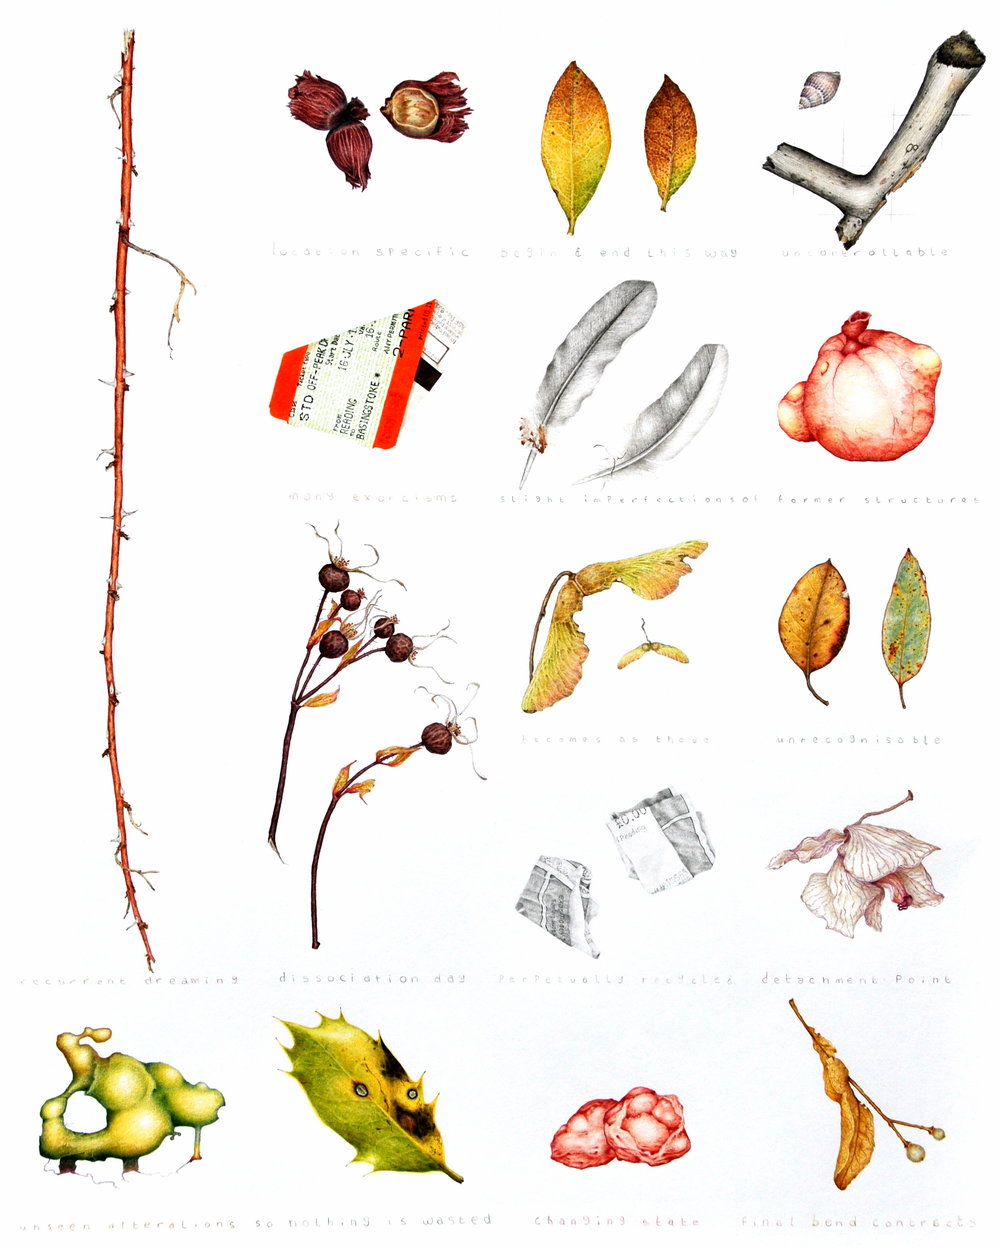 A colour pencil drawing of a range of debris objects, including dead leaves, old tickets, and pieces of flesh.